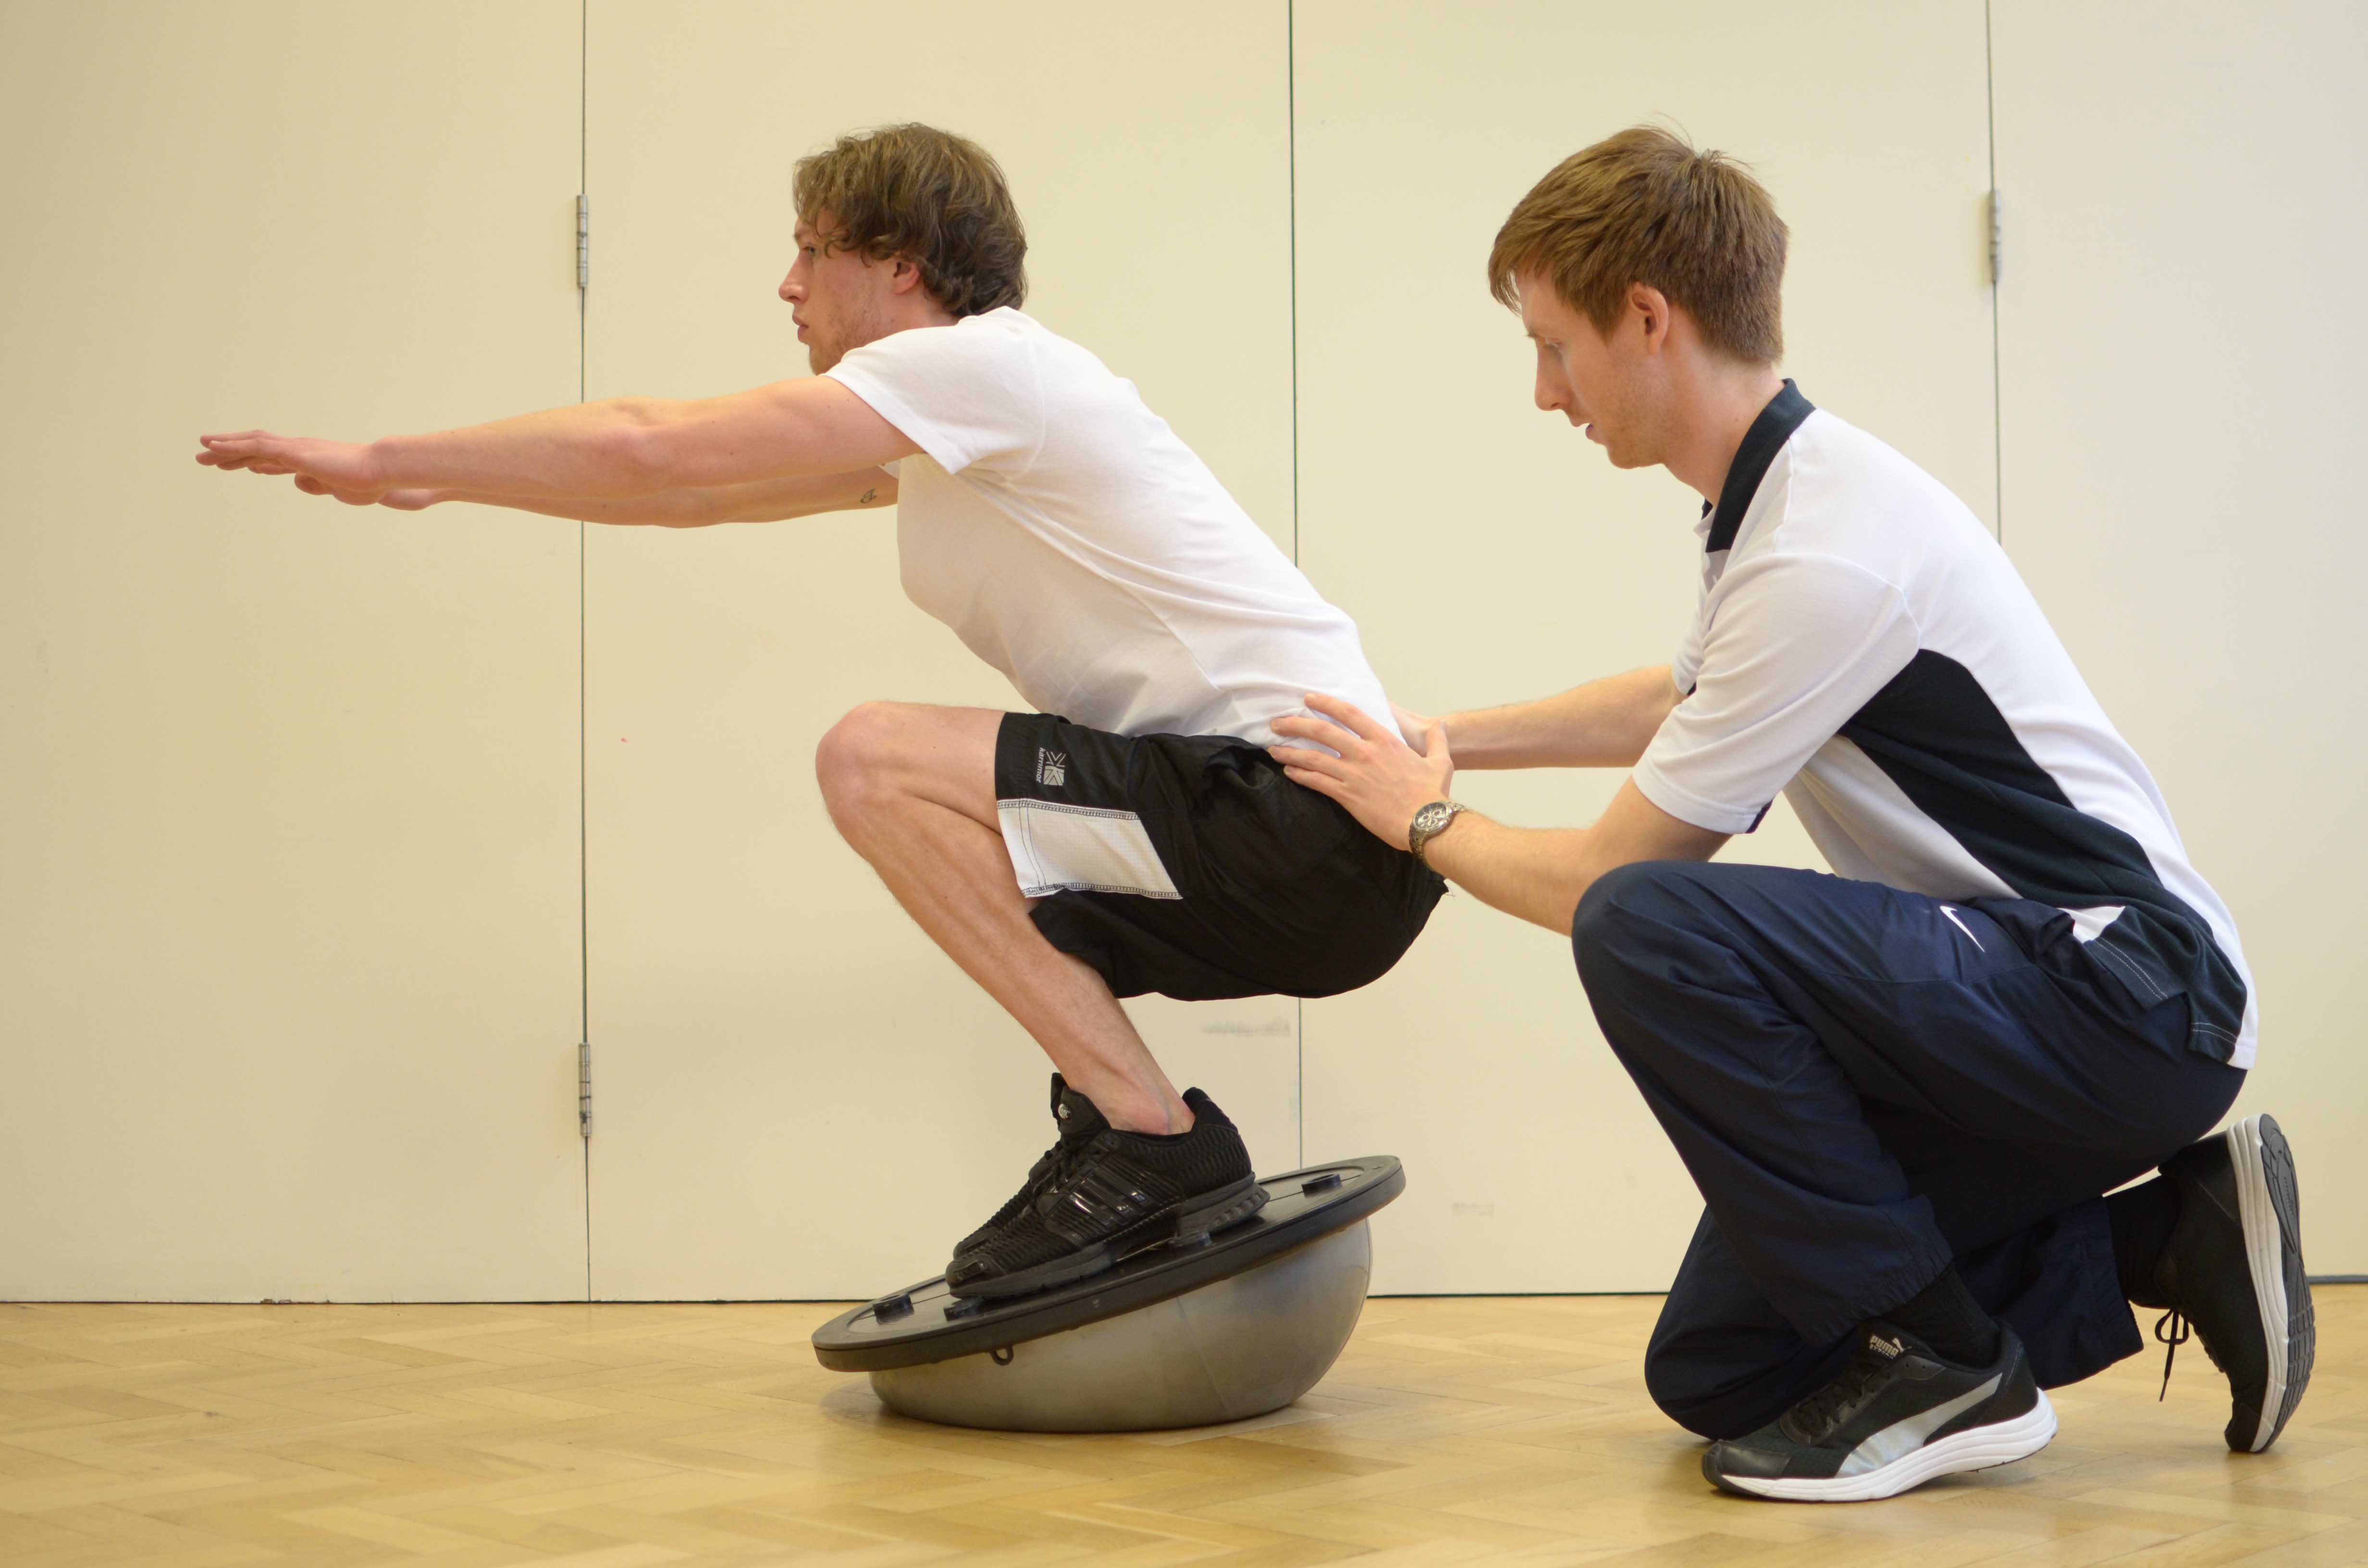 Leg strengthening and stability exercises using squats on a balance board under supervision of specialist MSK physiotherapist